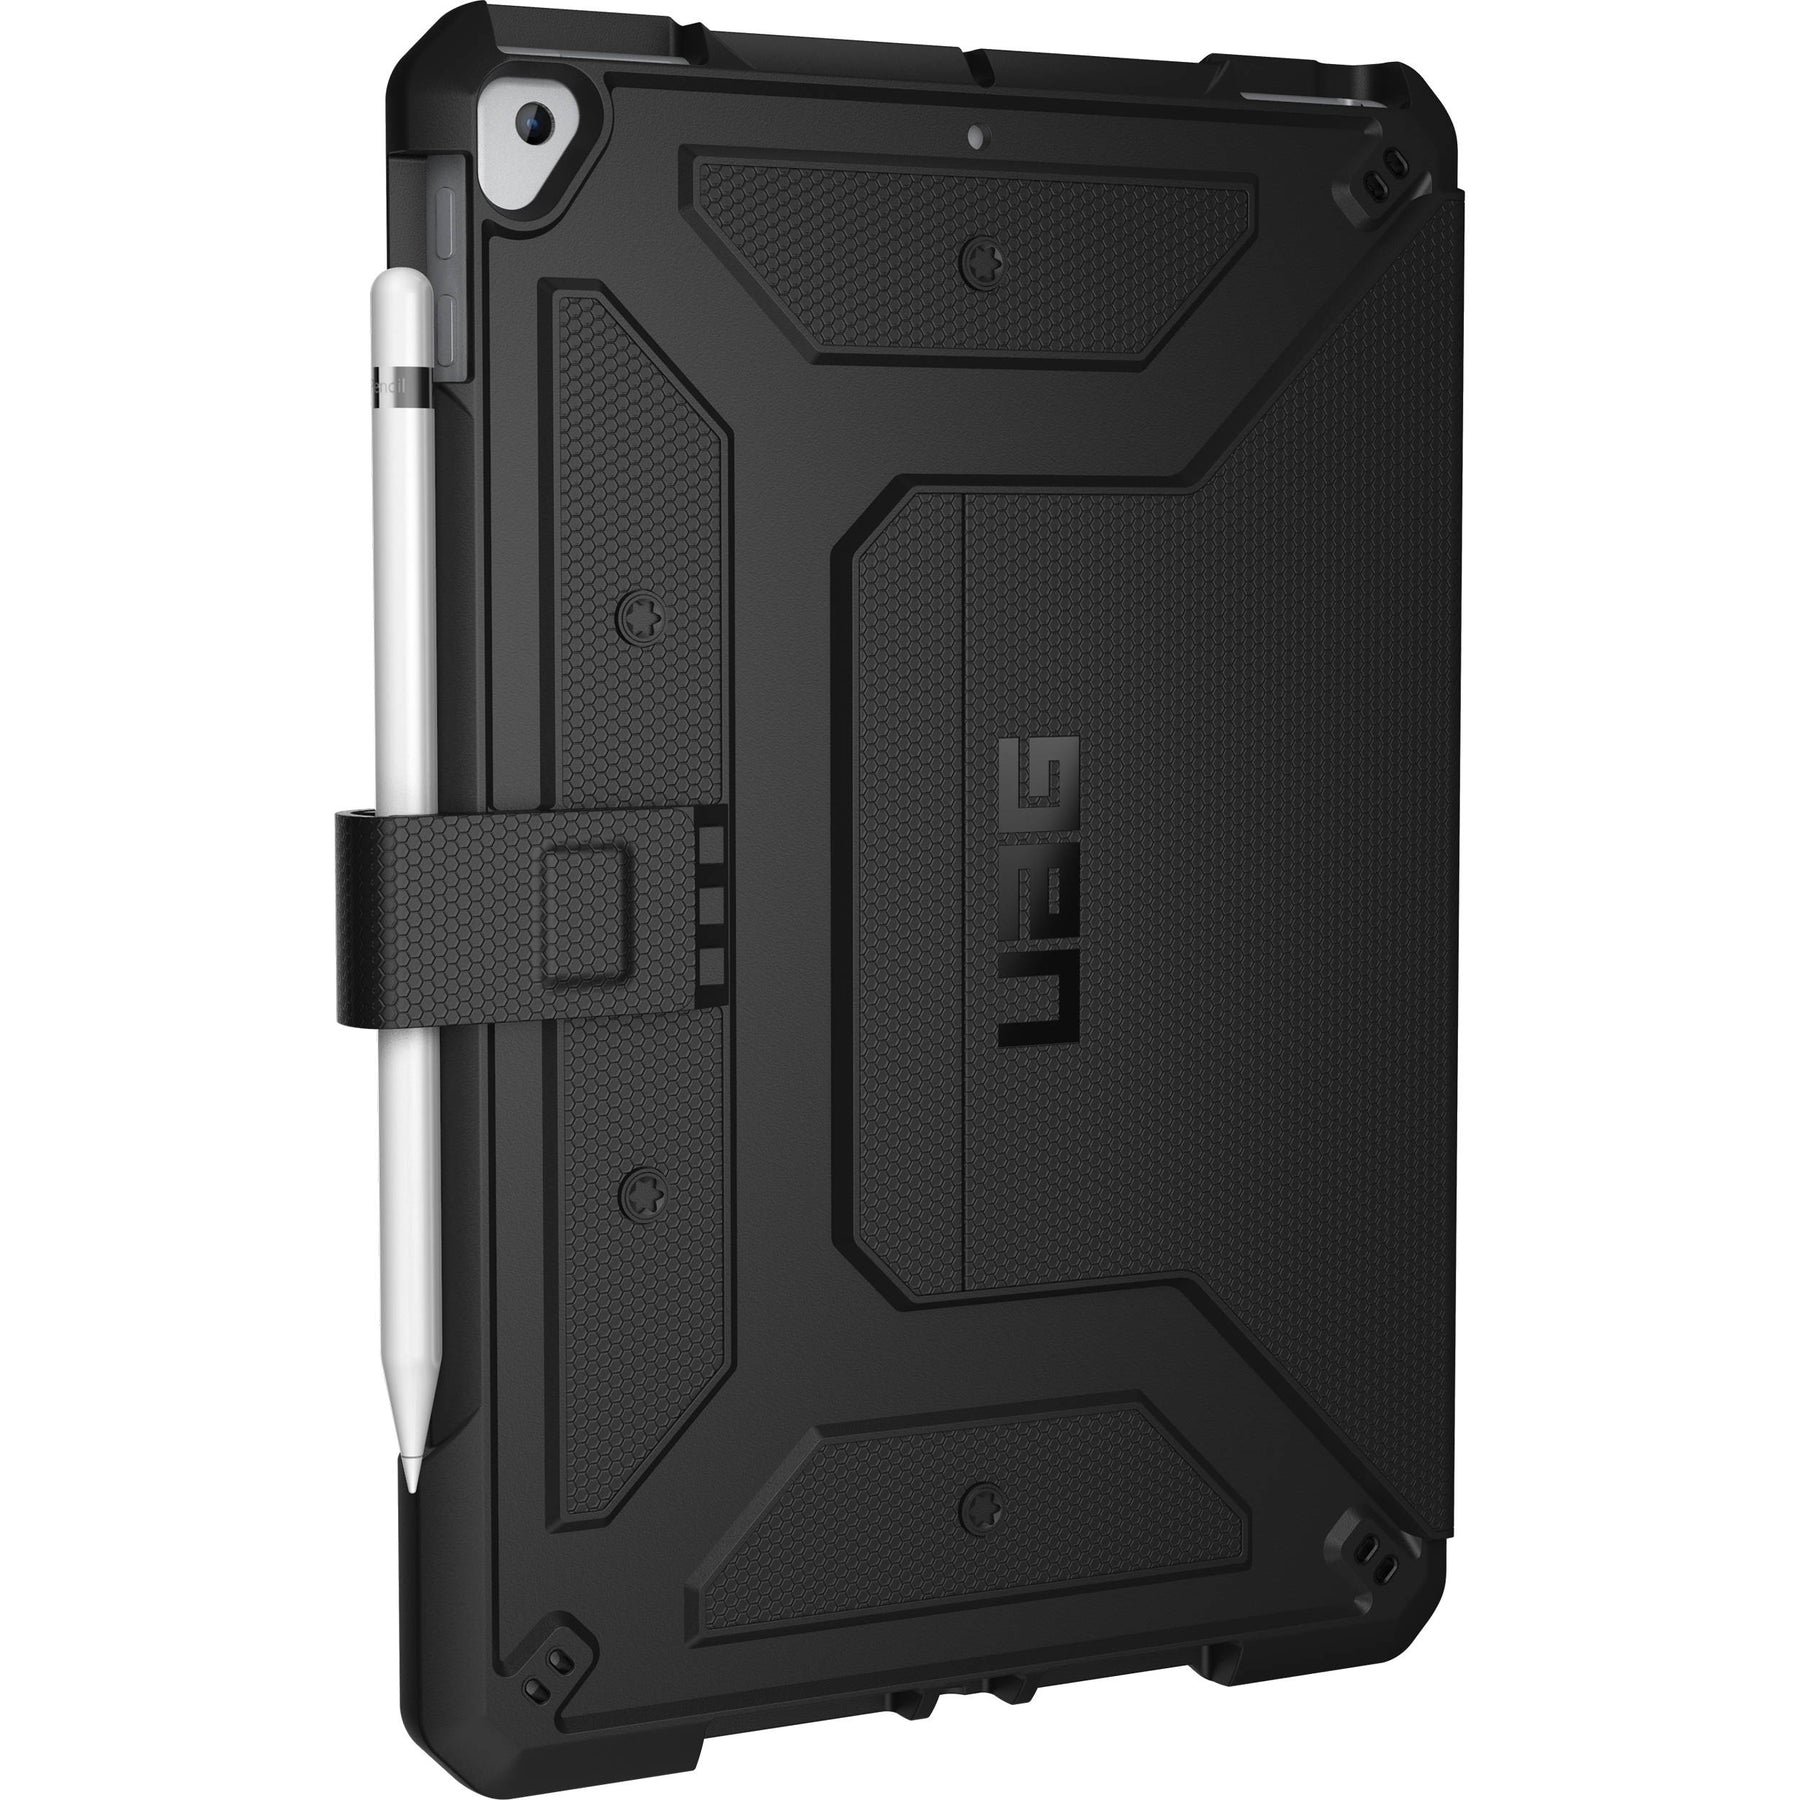 Review UAG Metropolis Case for iPad 7th Gen 10.2 inch [Comparision with iPad Pro 11]